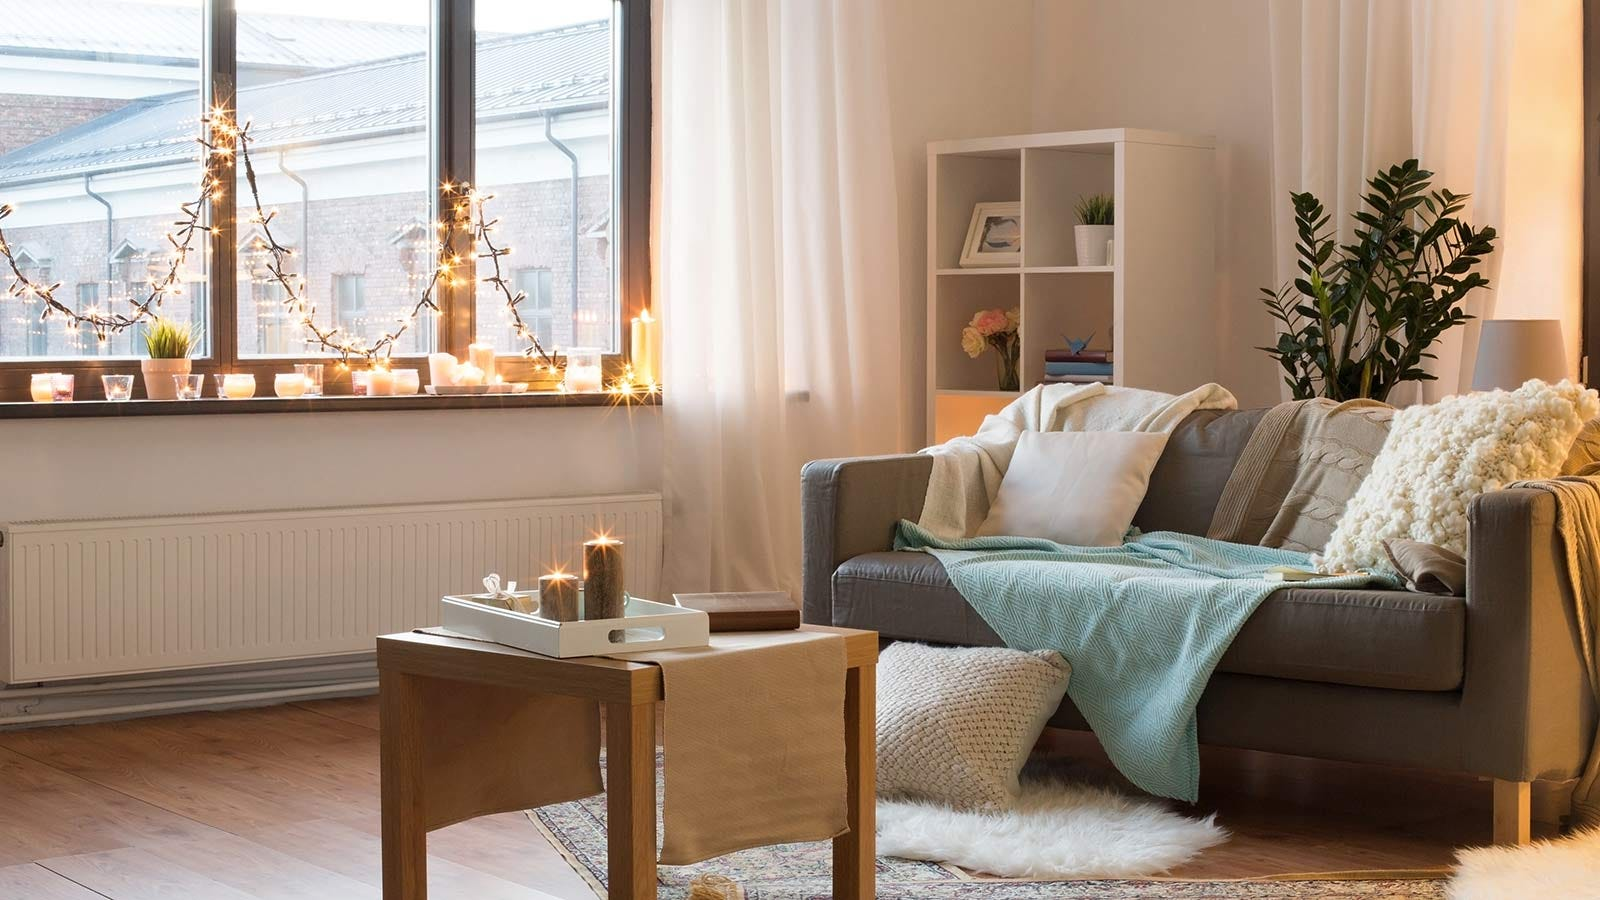 A living room with a window decorated with candles and Christmas lights.